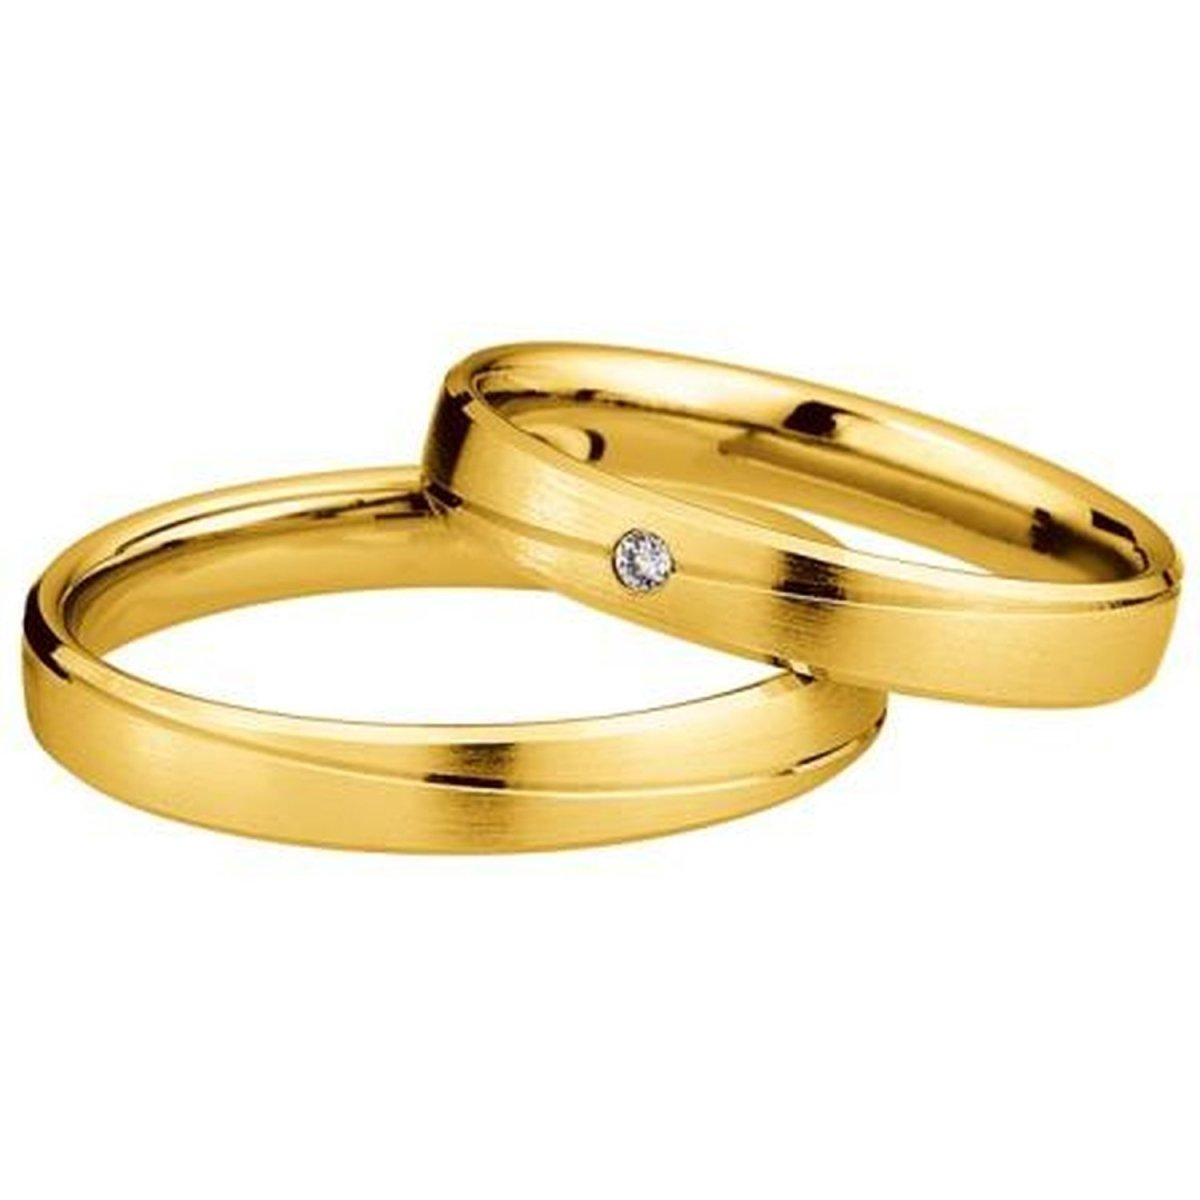 Saint Maurice Light Collection 87048-87049 White Gold Wedding Rings - Goldy Jewelry Store